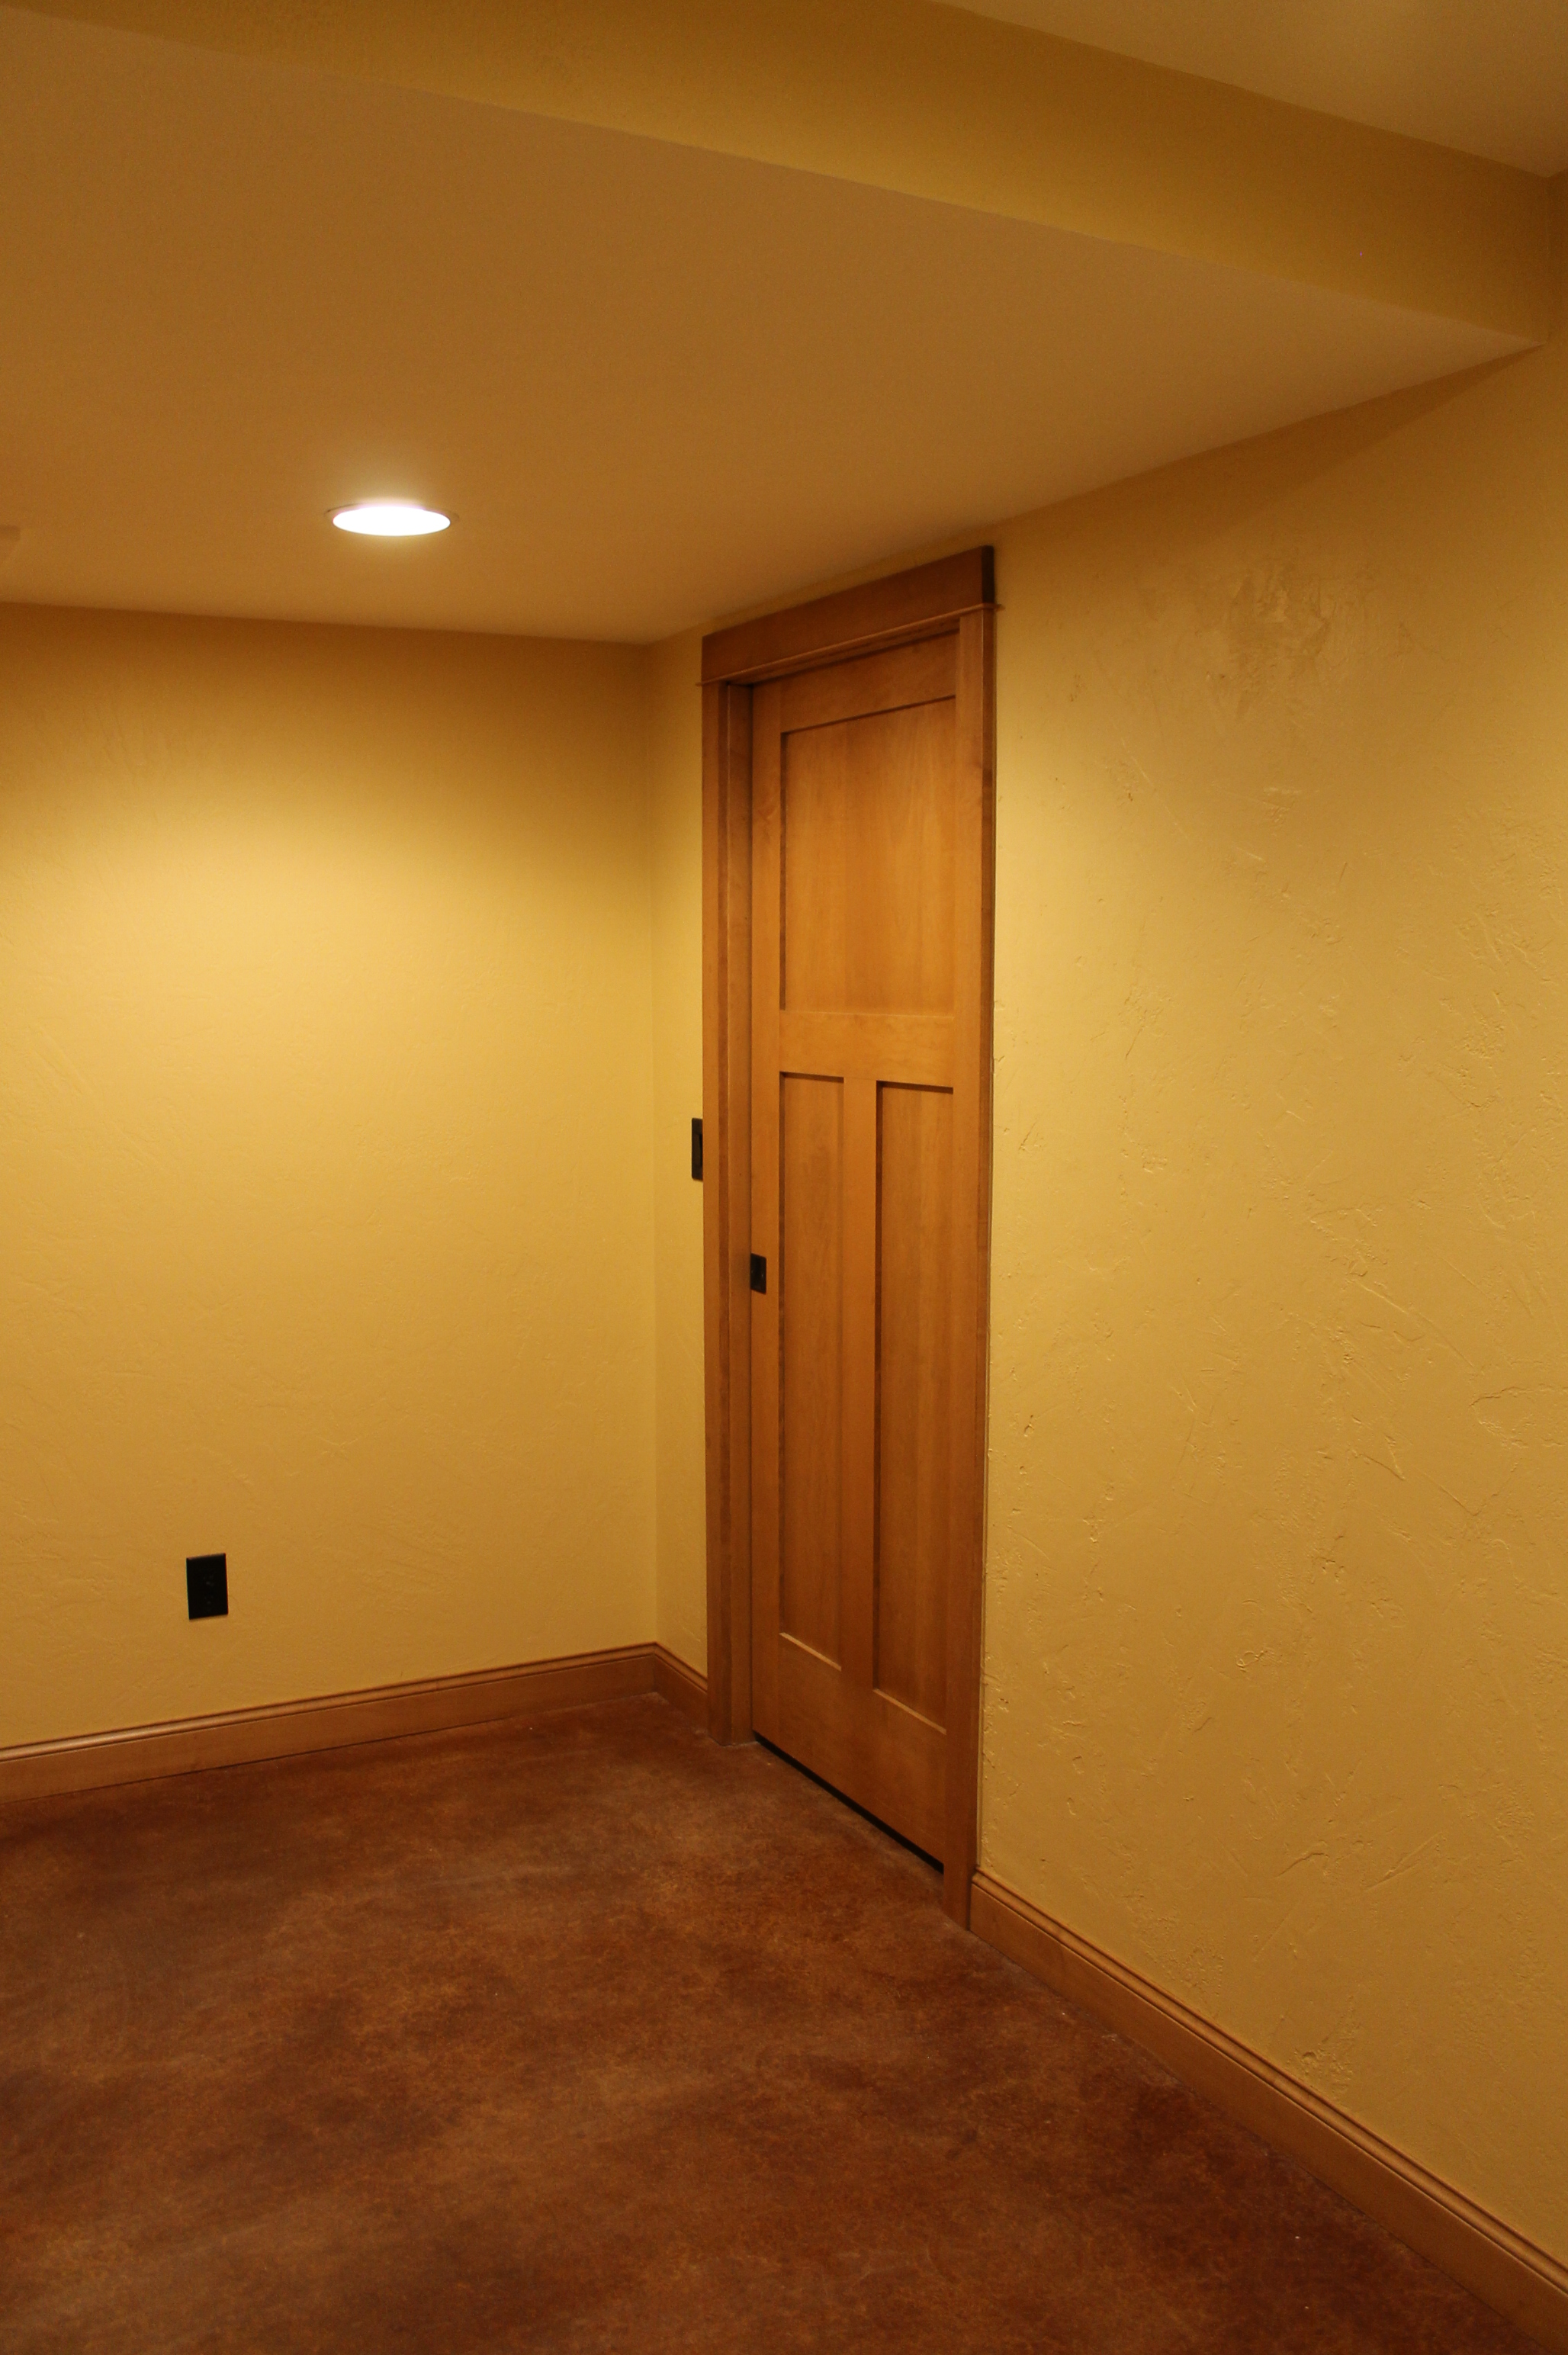 u003cu2013 Return to Home Improvement Services. Finishing doors ... & Basement Finishing - Daveu0027s Painting Services pezcame.com